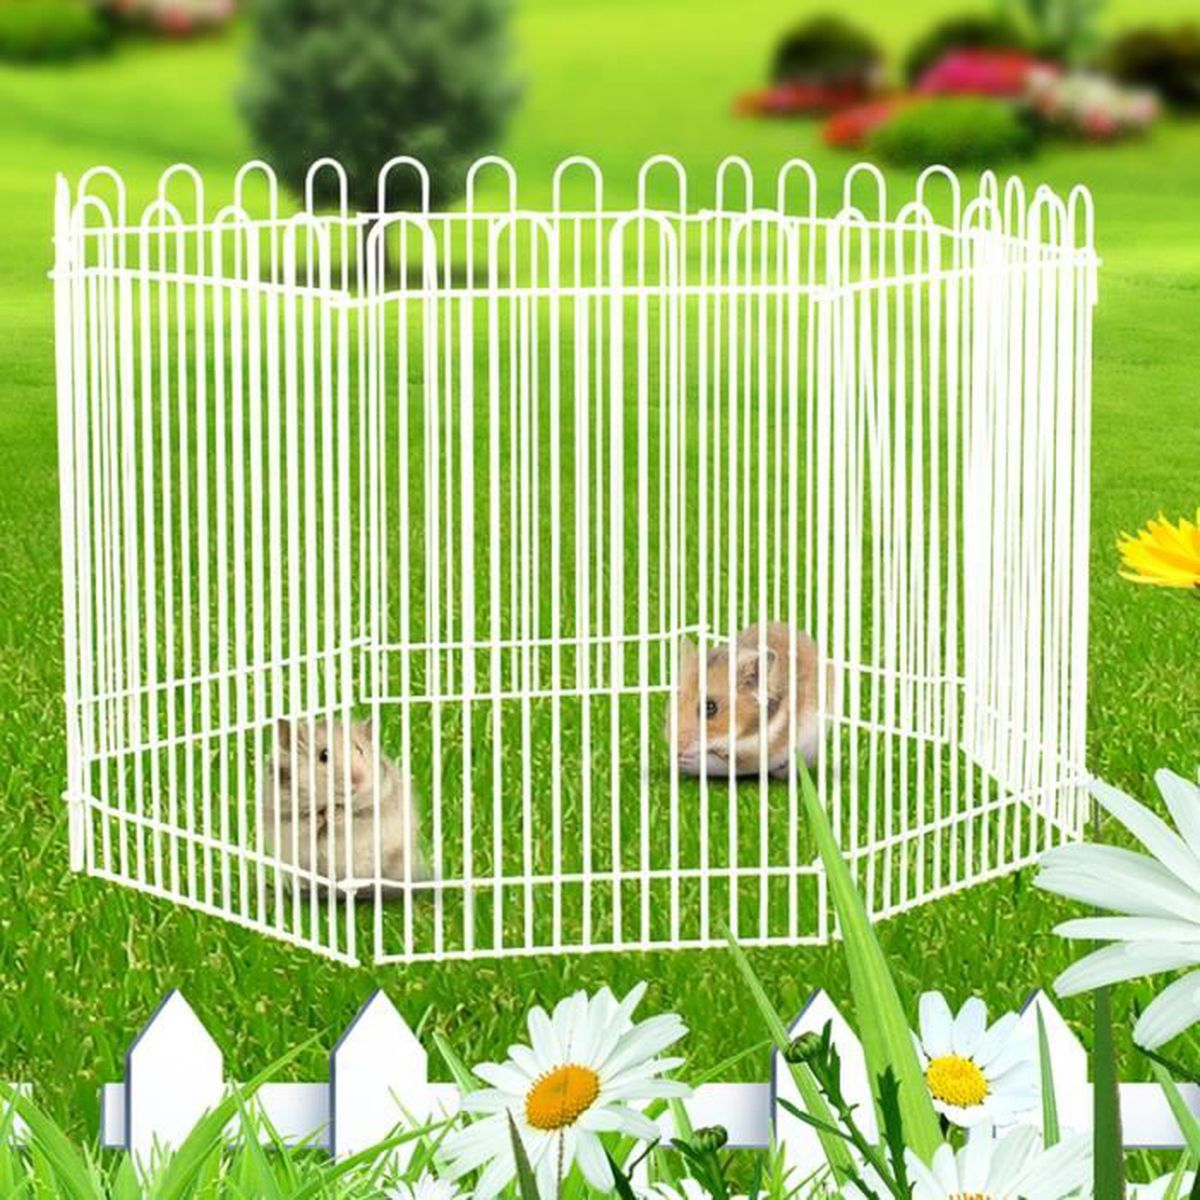 pliable cage boite cl ture pour chien chat rabbit hamster animaux parc mouvement achat vente. Black Bedroom Furniture Sets. Home Design Ideas